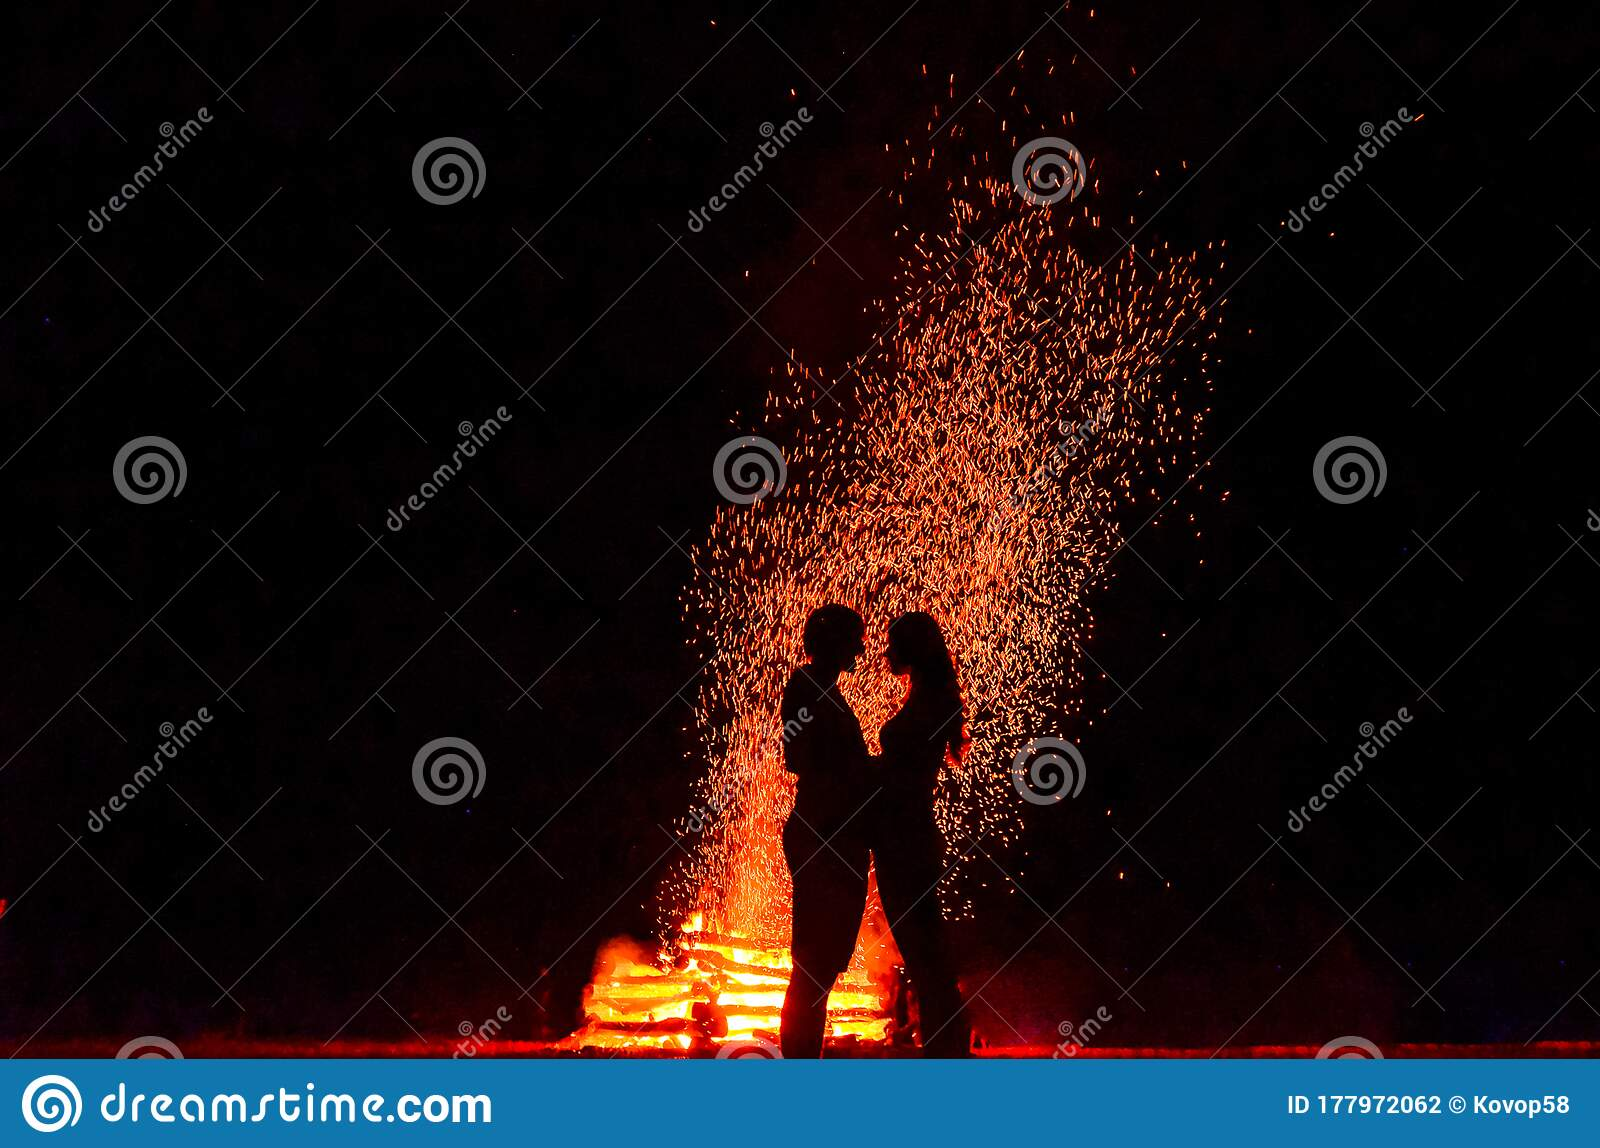 Silhouette Of Loving Couple In Fire Background Original Wallpaper Valentine Or Wedding Theme Stock Photo Image Of Outdoor Background 177972062